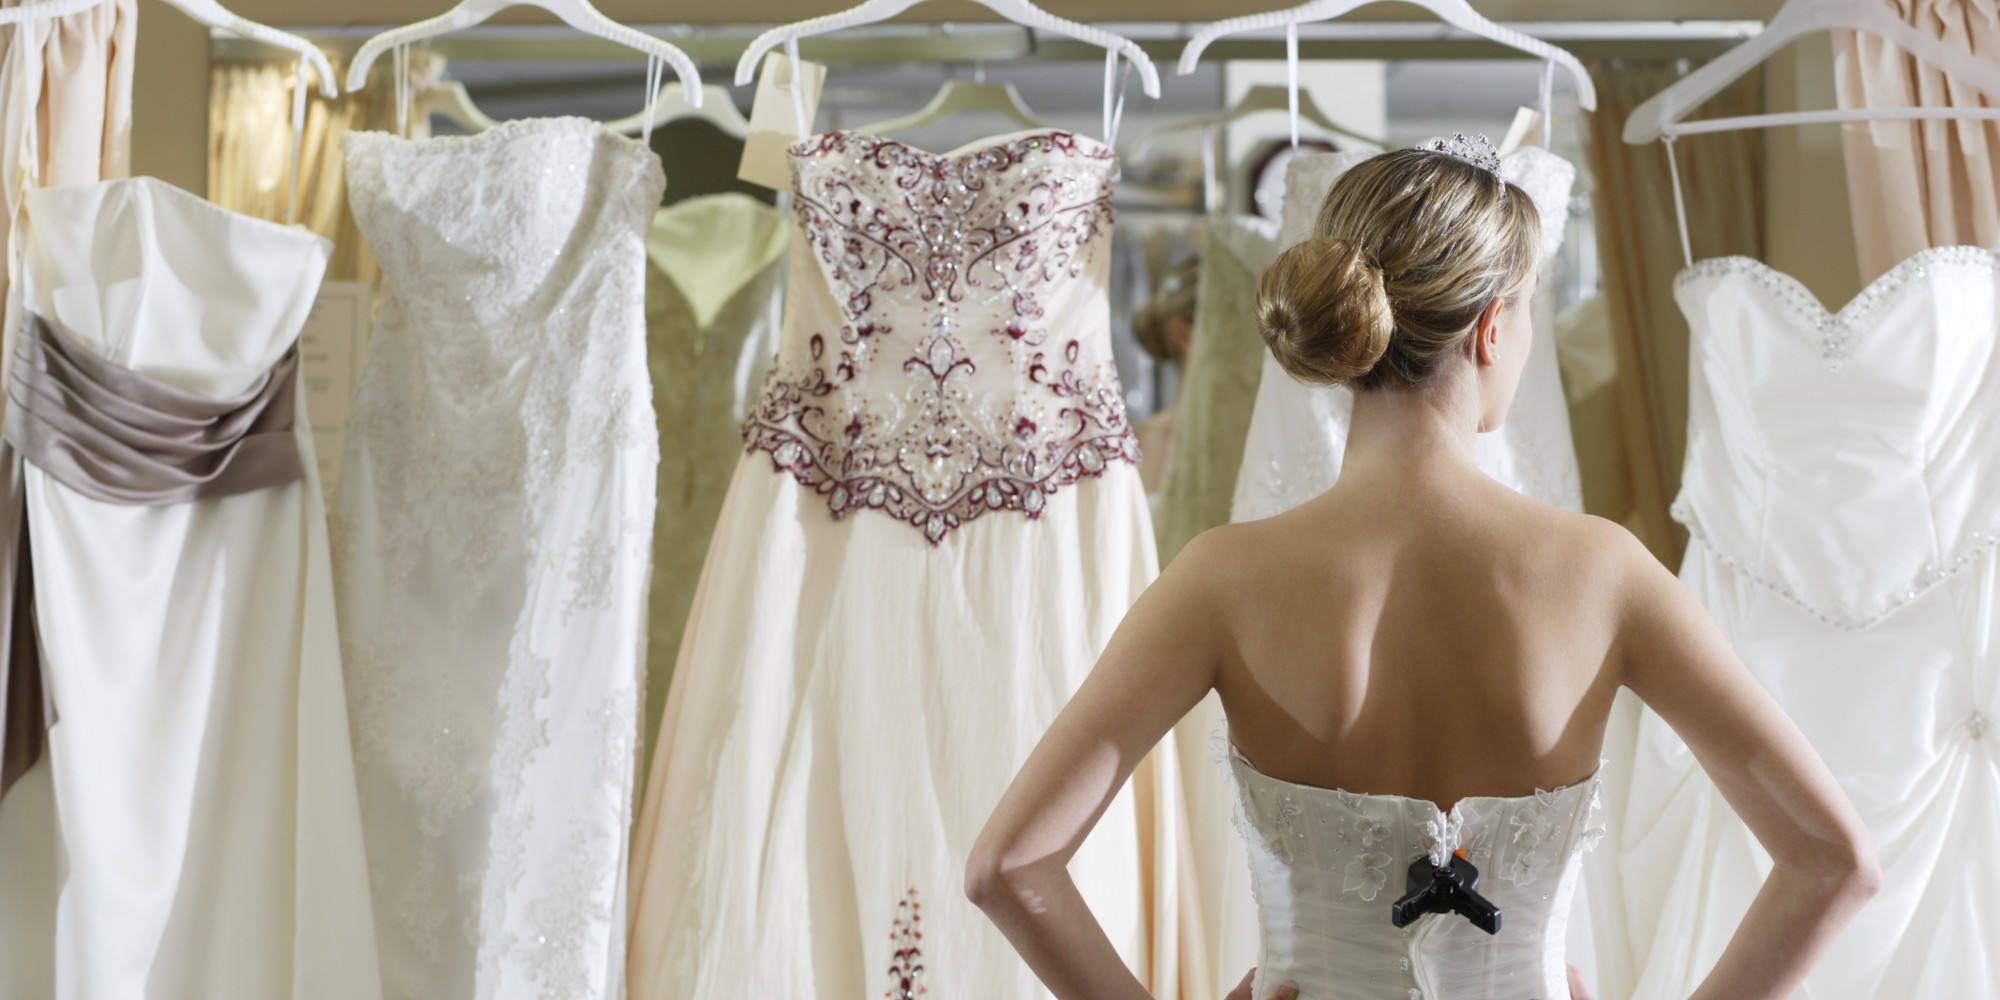 The 15 Worst Things About Shopping For A Wedding Dress